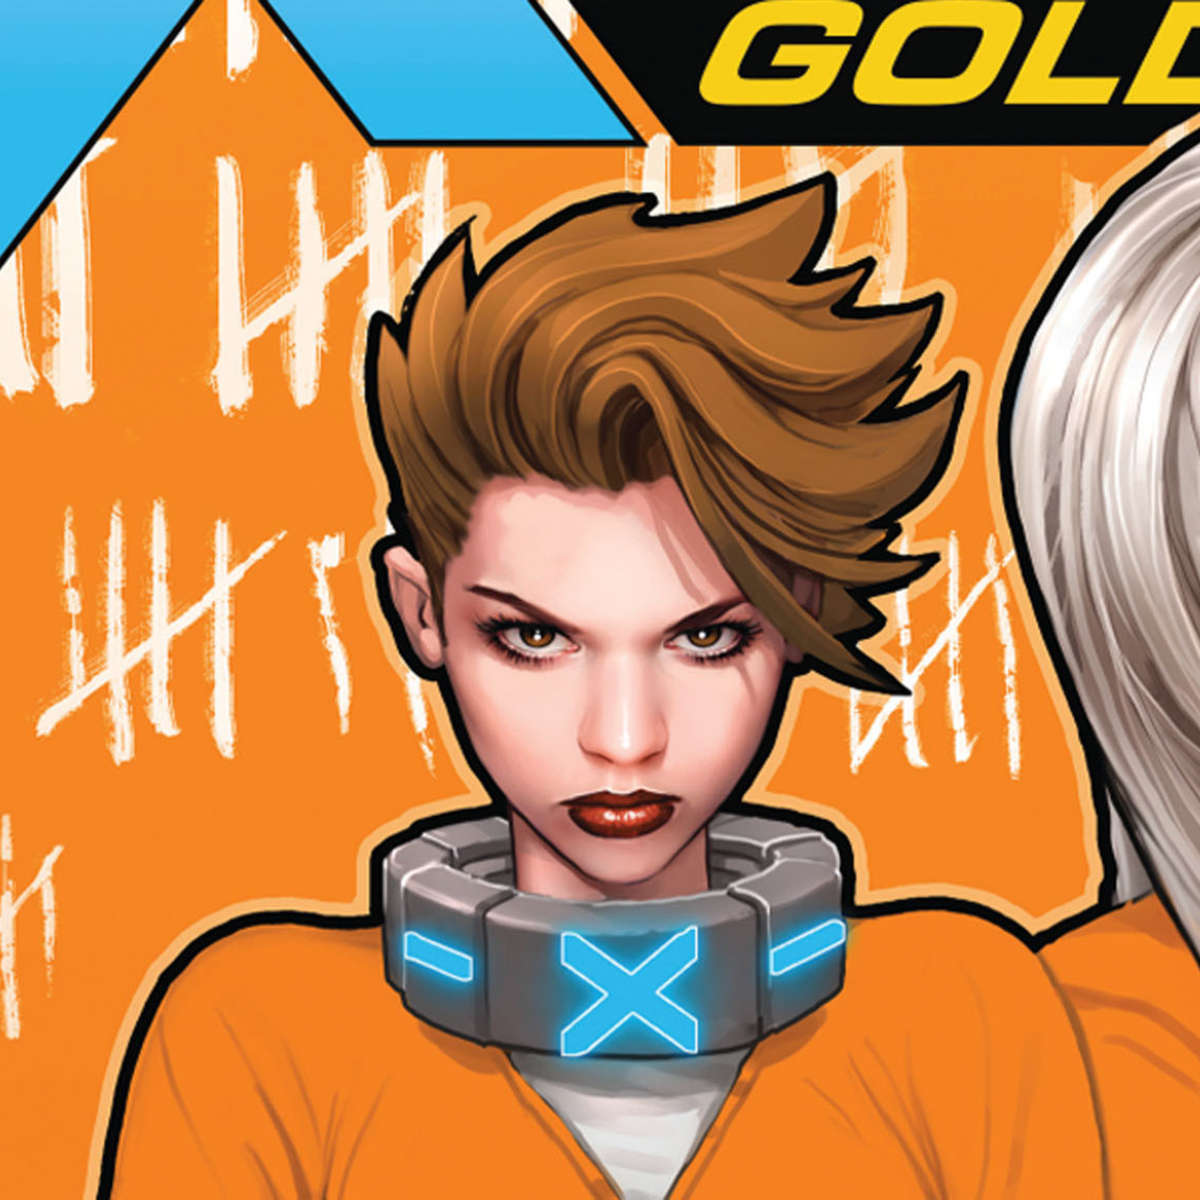 x-men_gold_24_hero_image.jpg